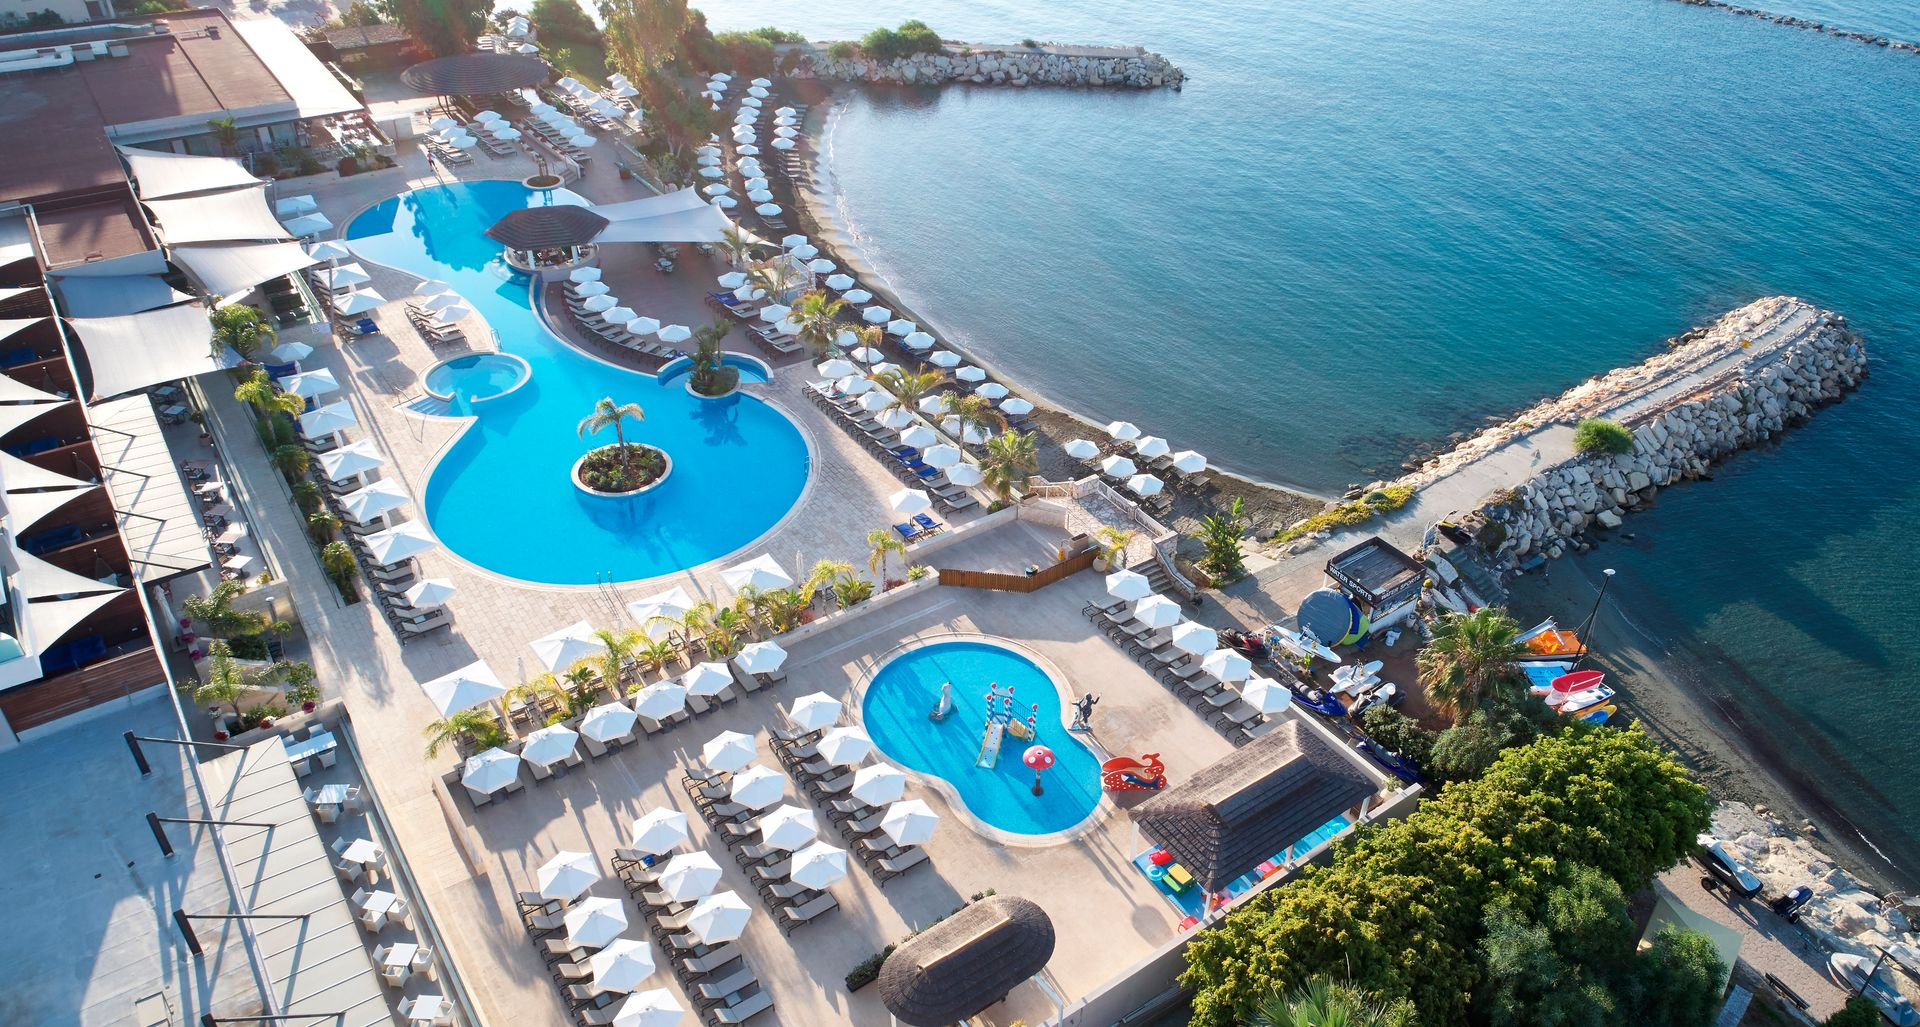 5* The Royal Apollonia Limassol - Κύπρος ✦ 2 Ημέρες (1 Διανυκτέρευση) ✦ 2 άτομα ✦ Πρωινό ✦ 01/07/2021 έως 31/08/2021 ✦ Μπροστά στην παραλία!